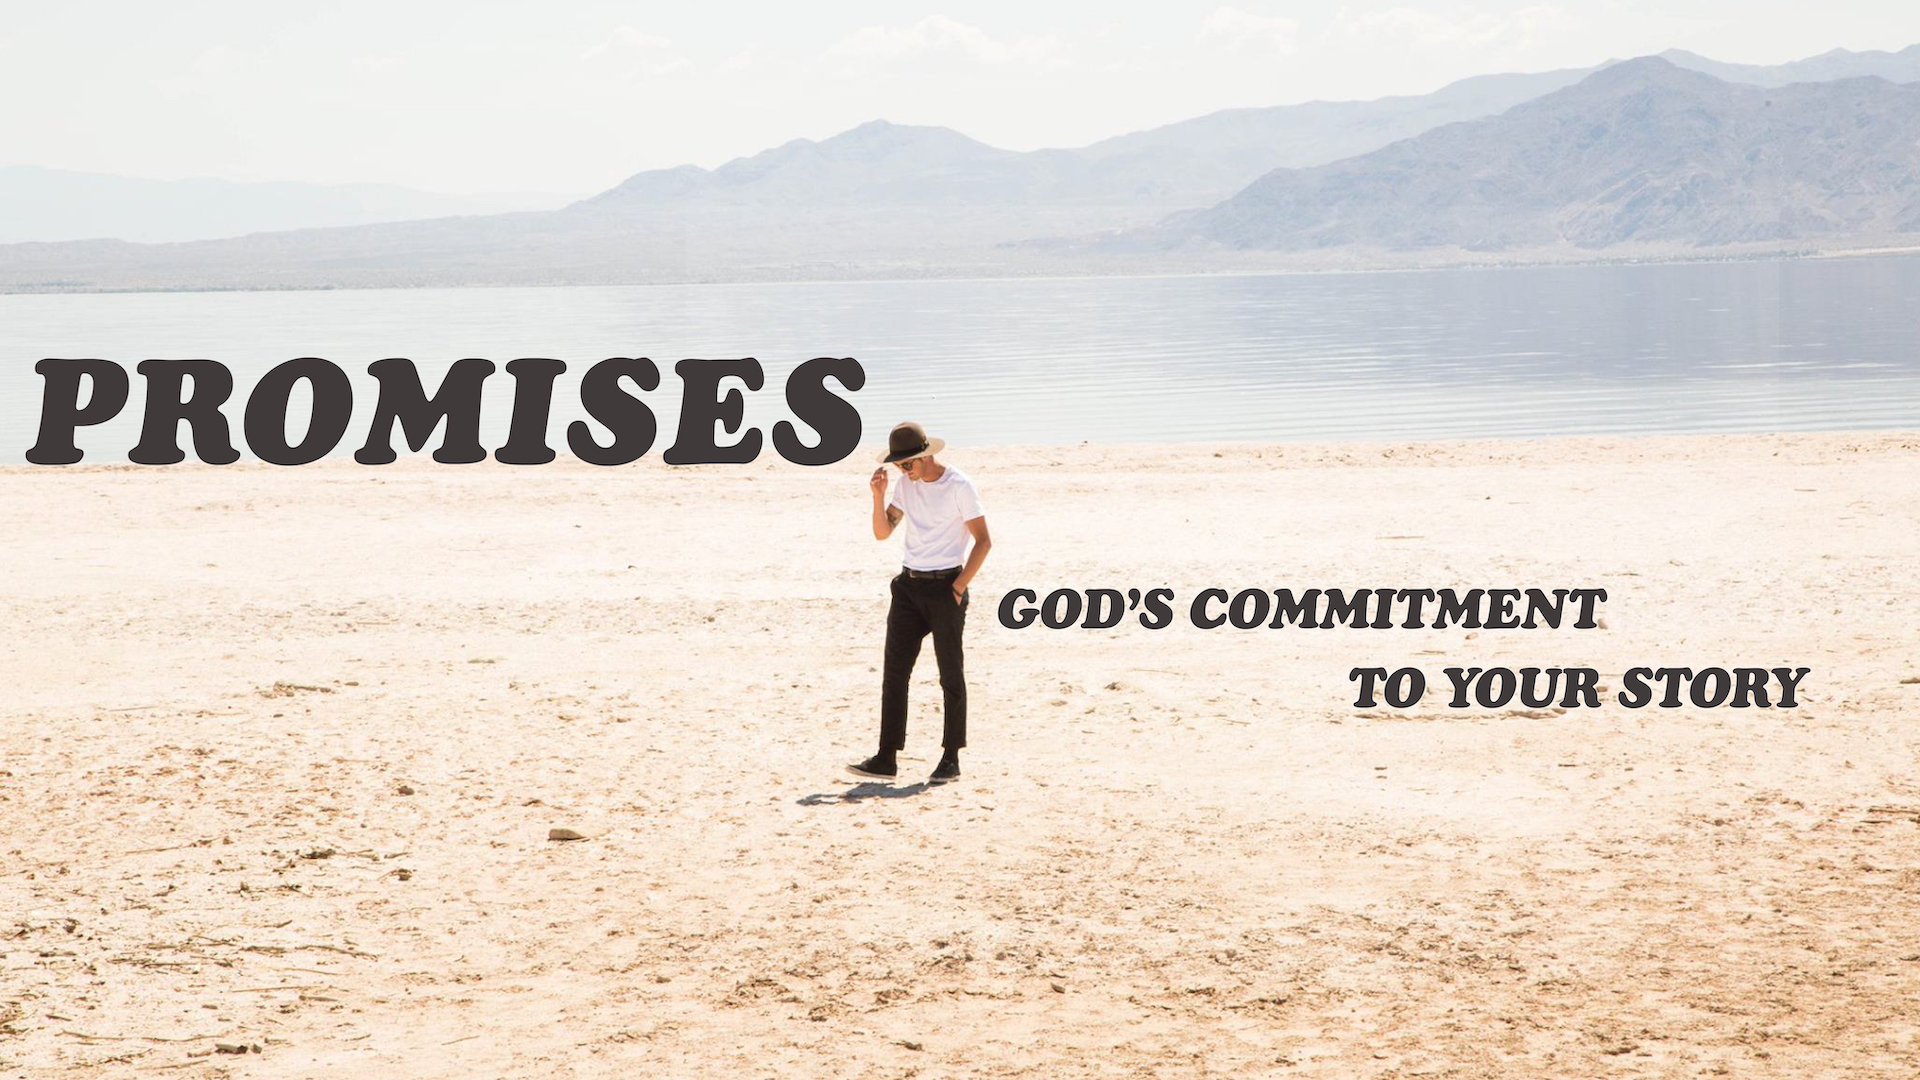 PROMISES - THE LATEST SERIES IS ALL ABOUT WHAT GOD HAS PROMISED US THROUGH HIS WORD AND HIS CHARACTER.